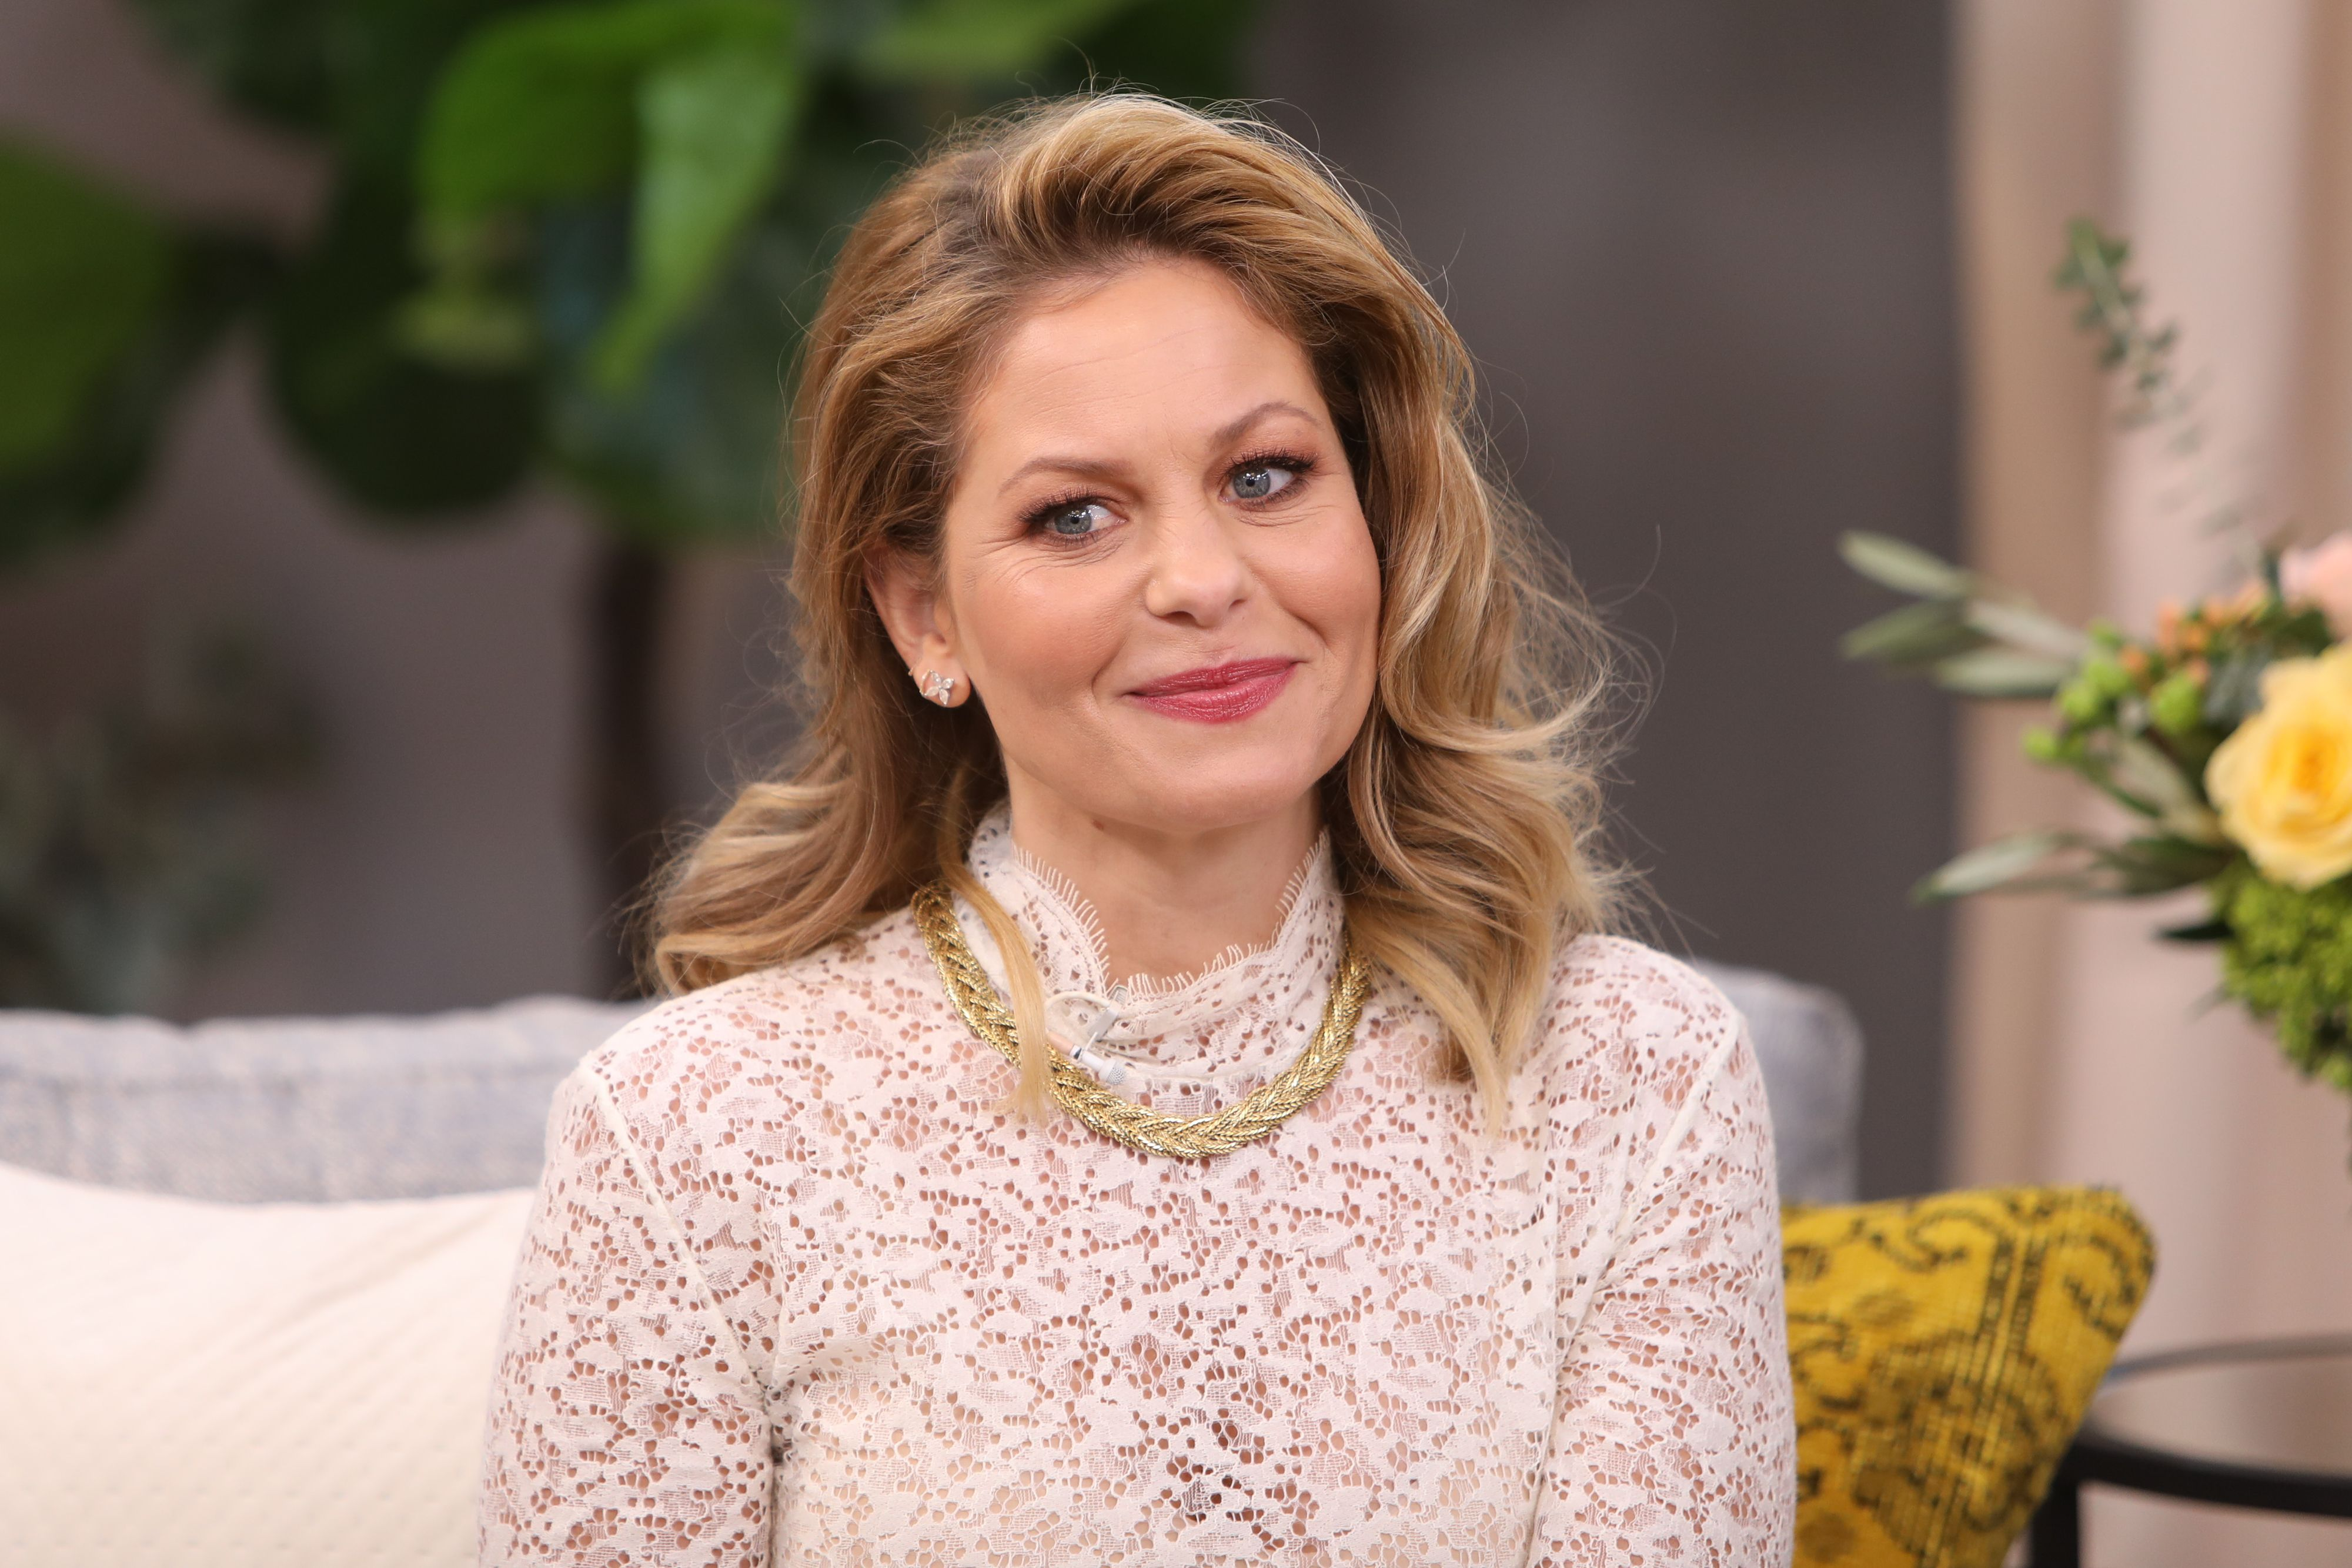 """Candace Cameron Bure at Hallmark Channel's """"Home & Family"""" at Universal Studios Hollywood on October 21, 2019 in Universal City, California   Photo: Getty Images"""